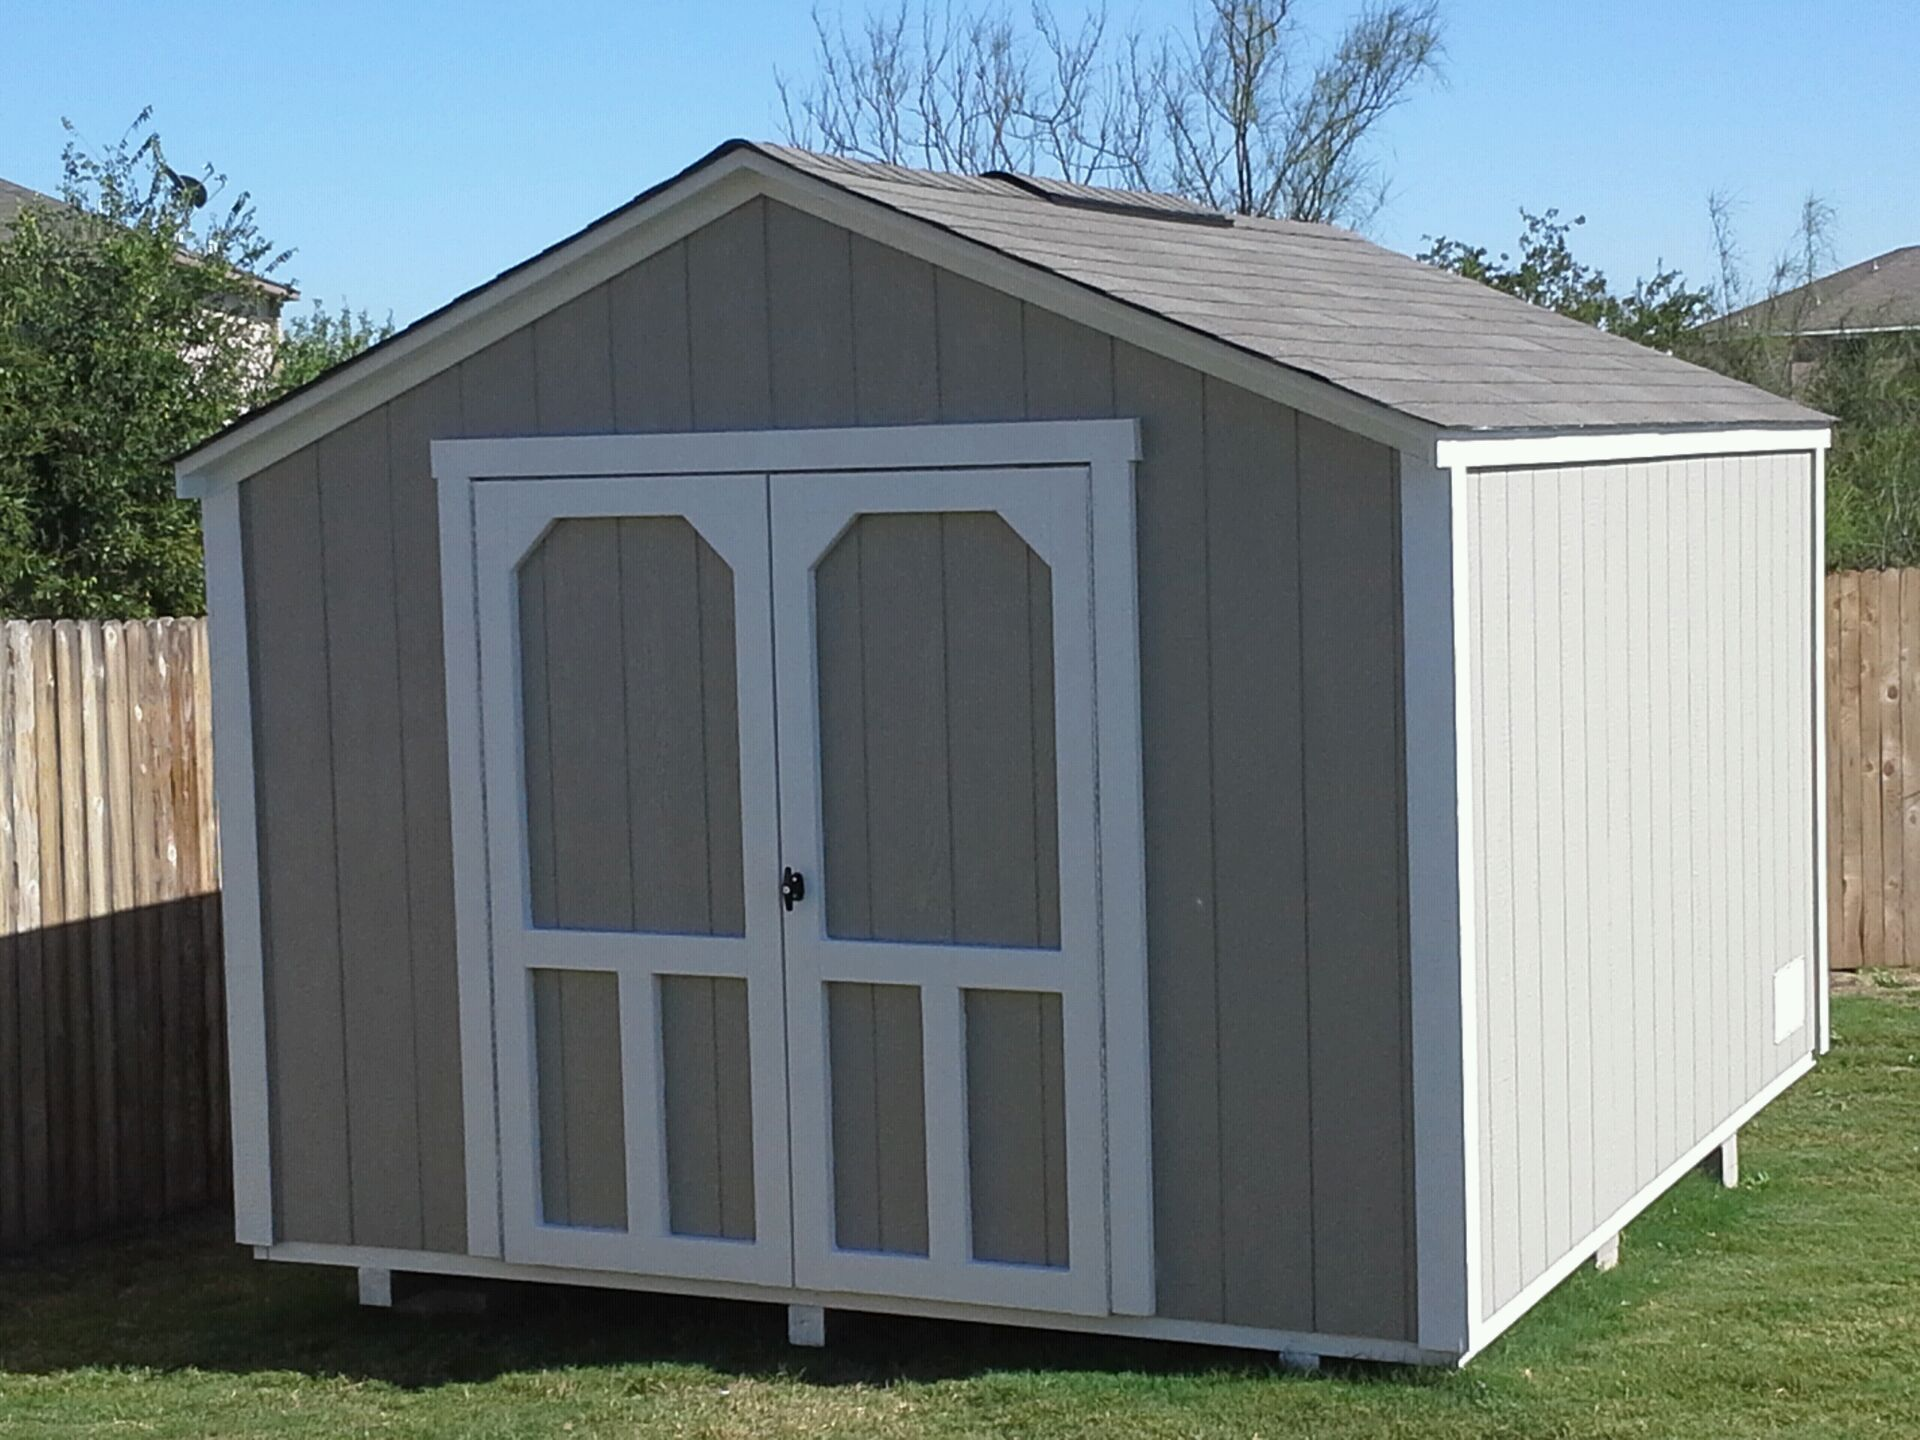 Backyard barns wood storage sheds san antonio texas for Gable style shed